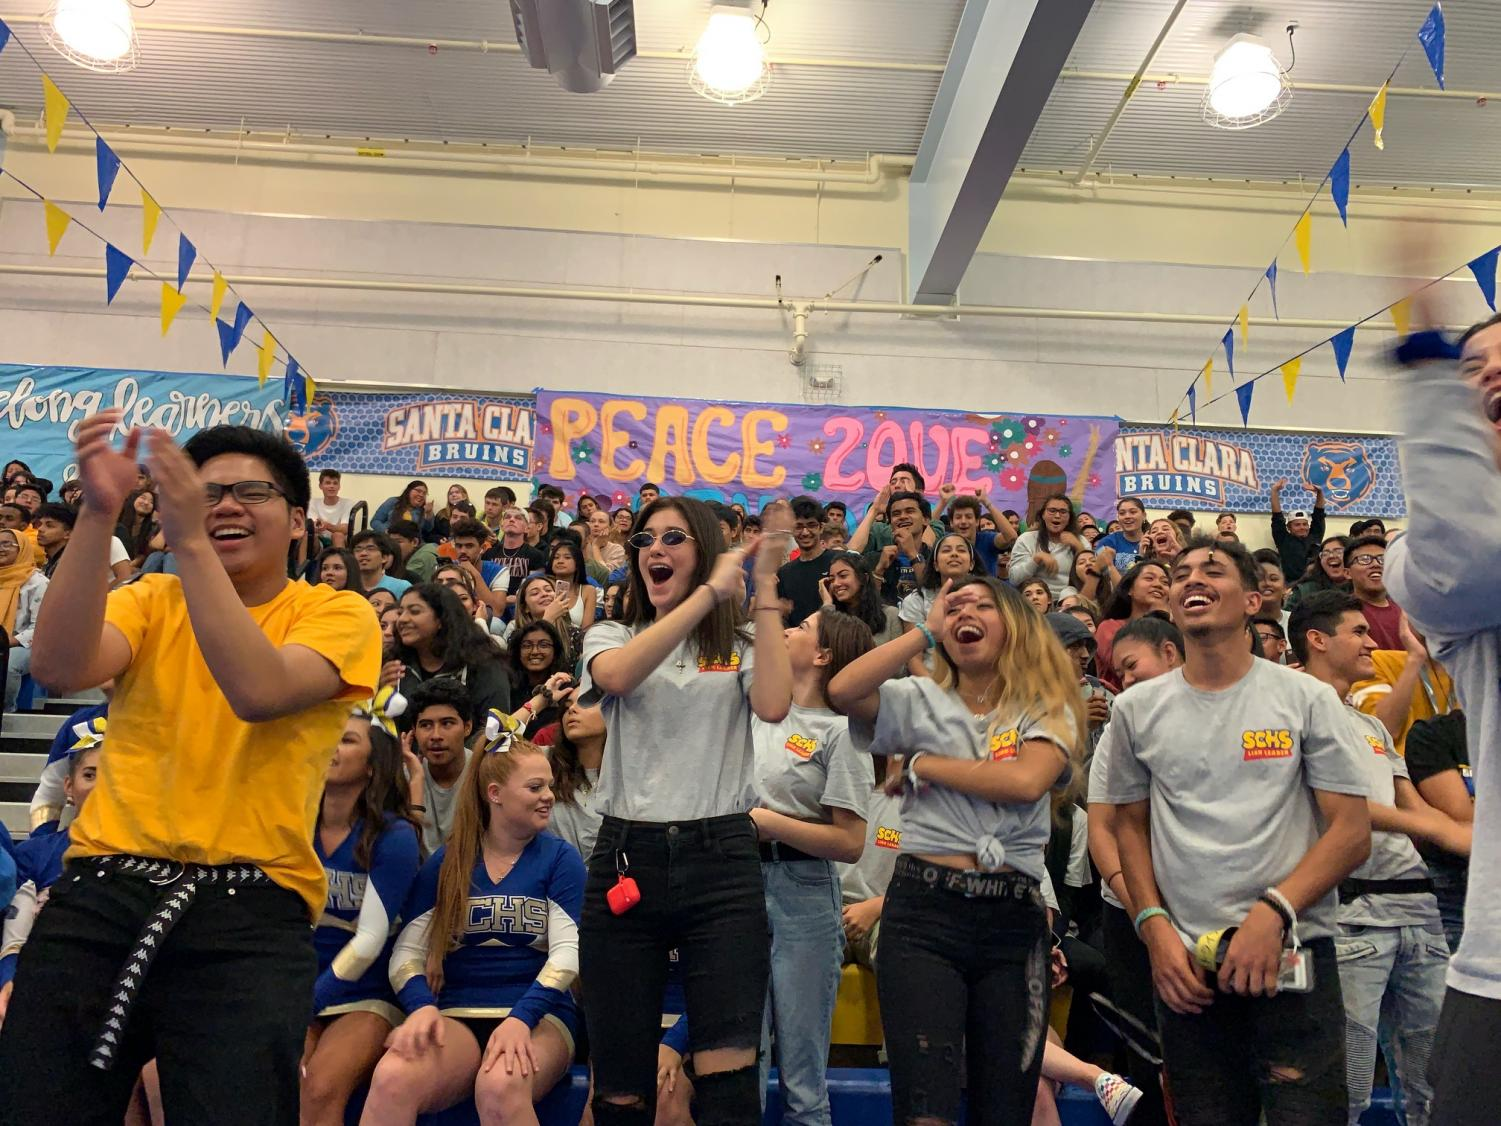 Seniors (left to right) Dion Celino, Jordenne Schilling, Franchesca Poquiz and Ben Carter, cheer on their classmates at the first ever Welcome Rally.